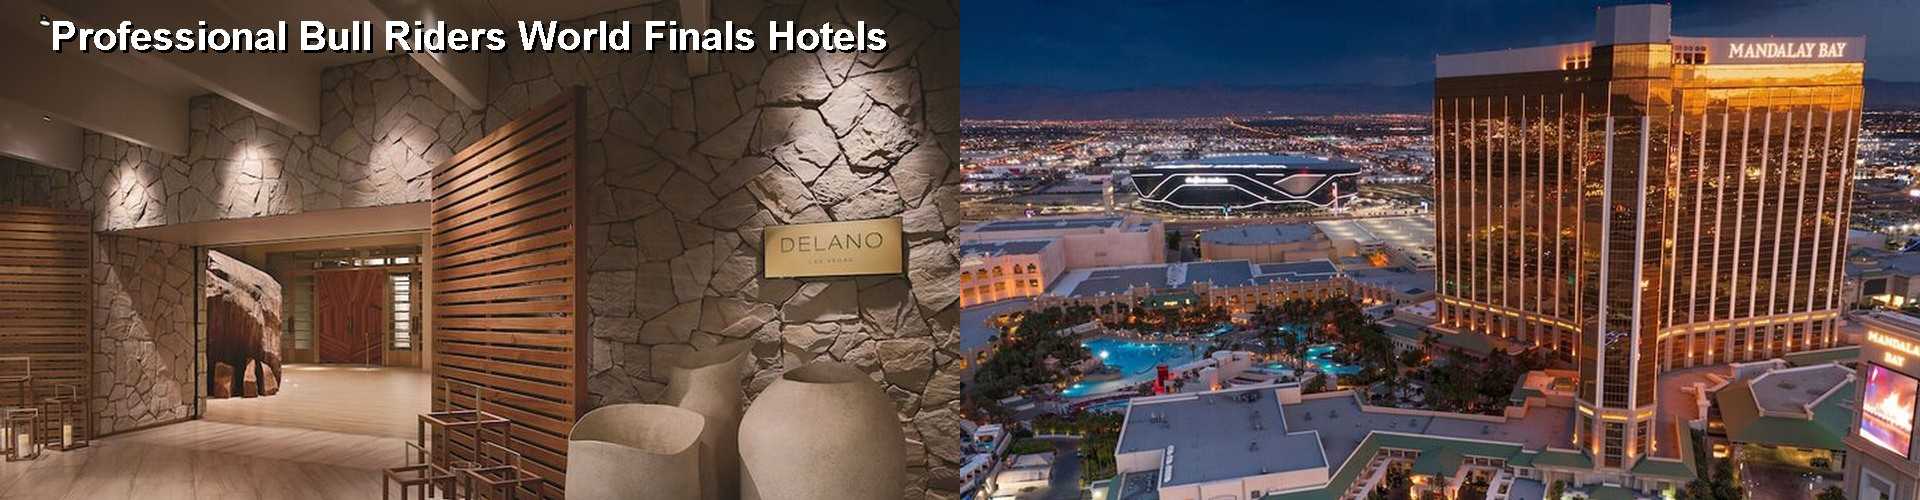 5 Best Hotels near Professional Bull Riders World Finals